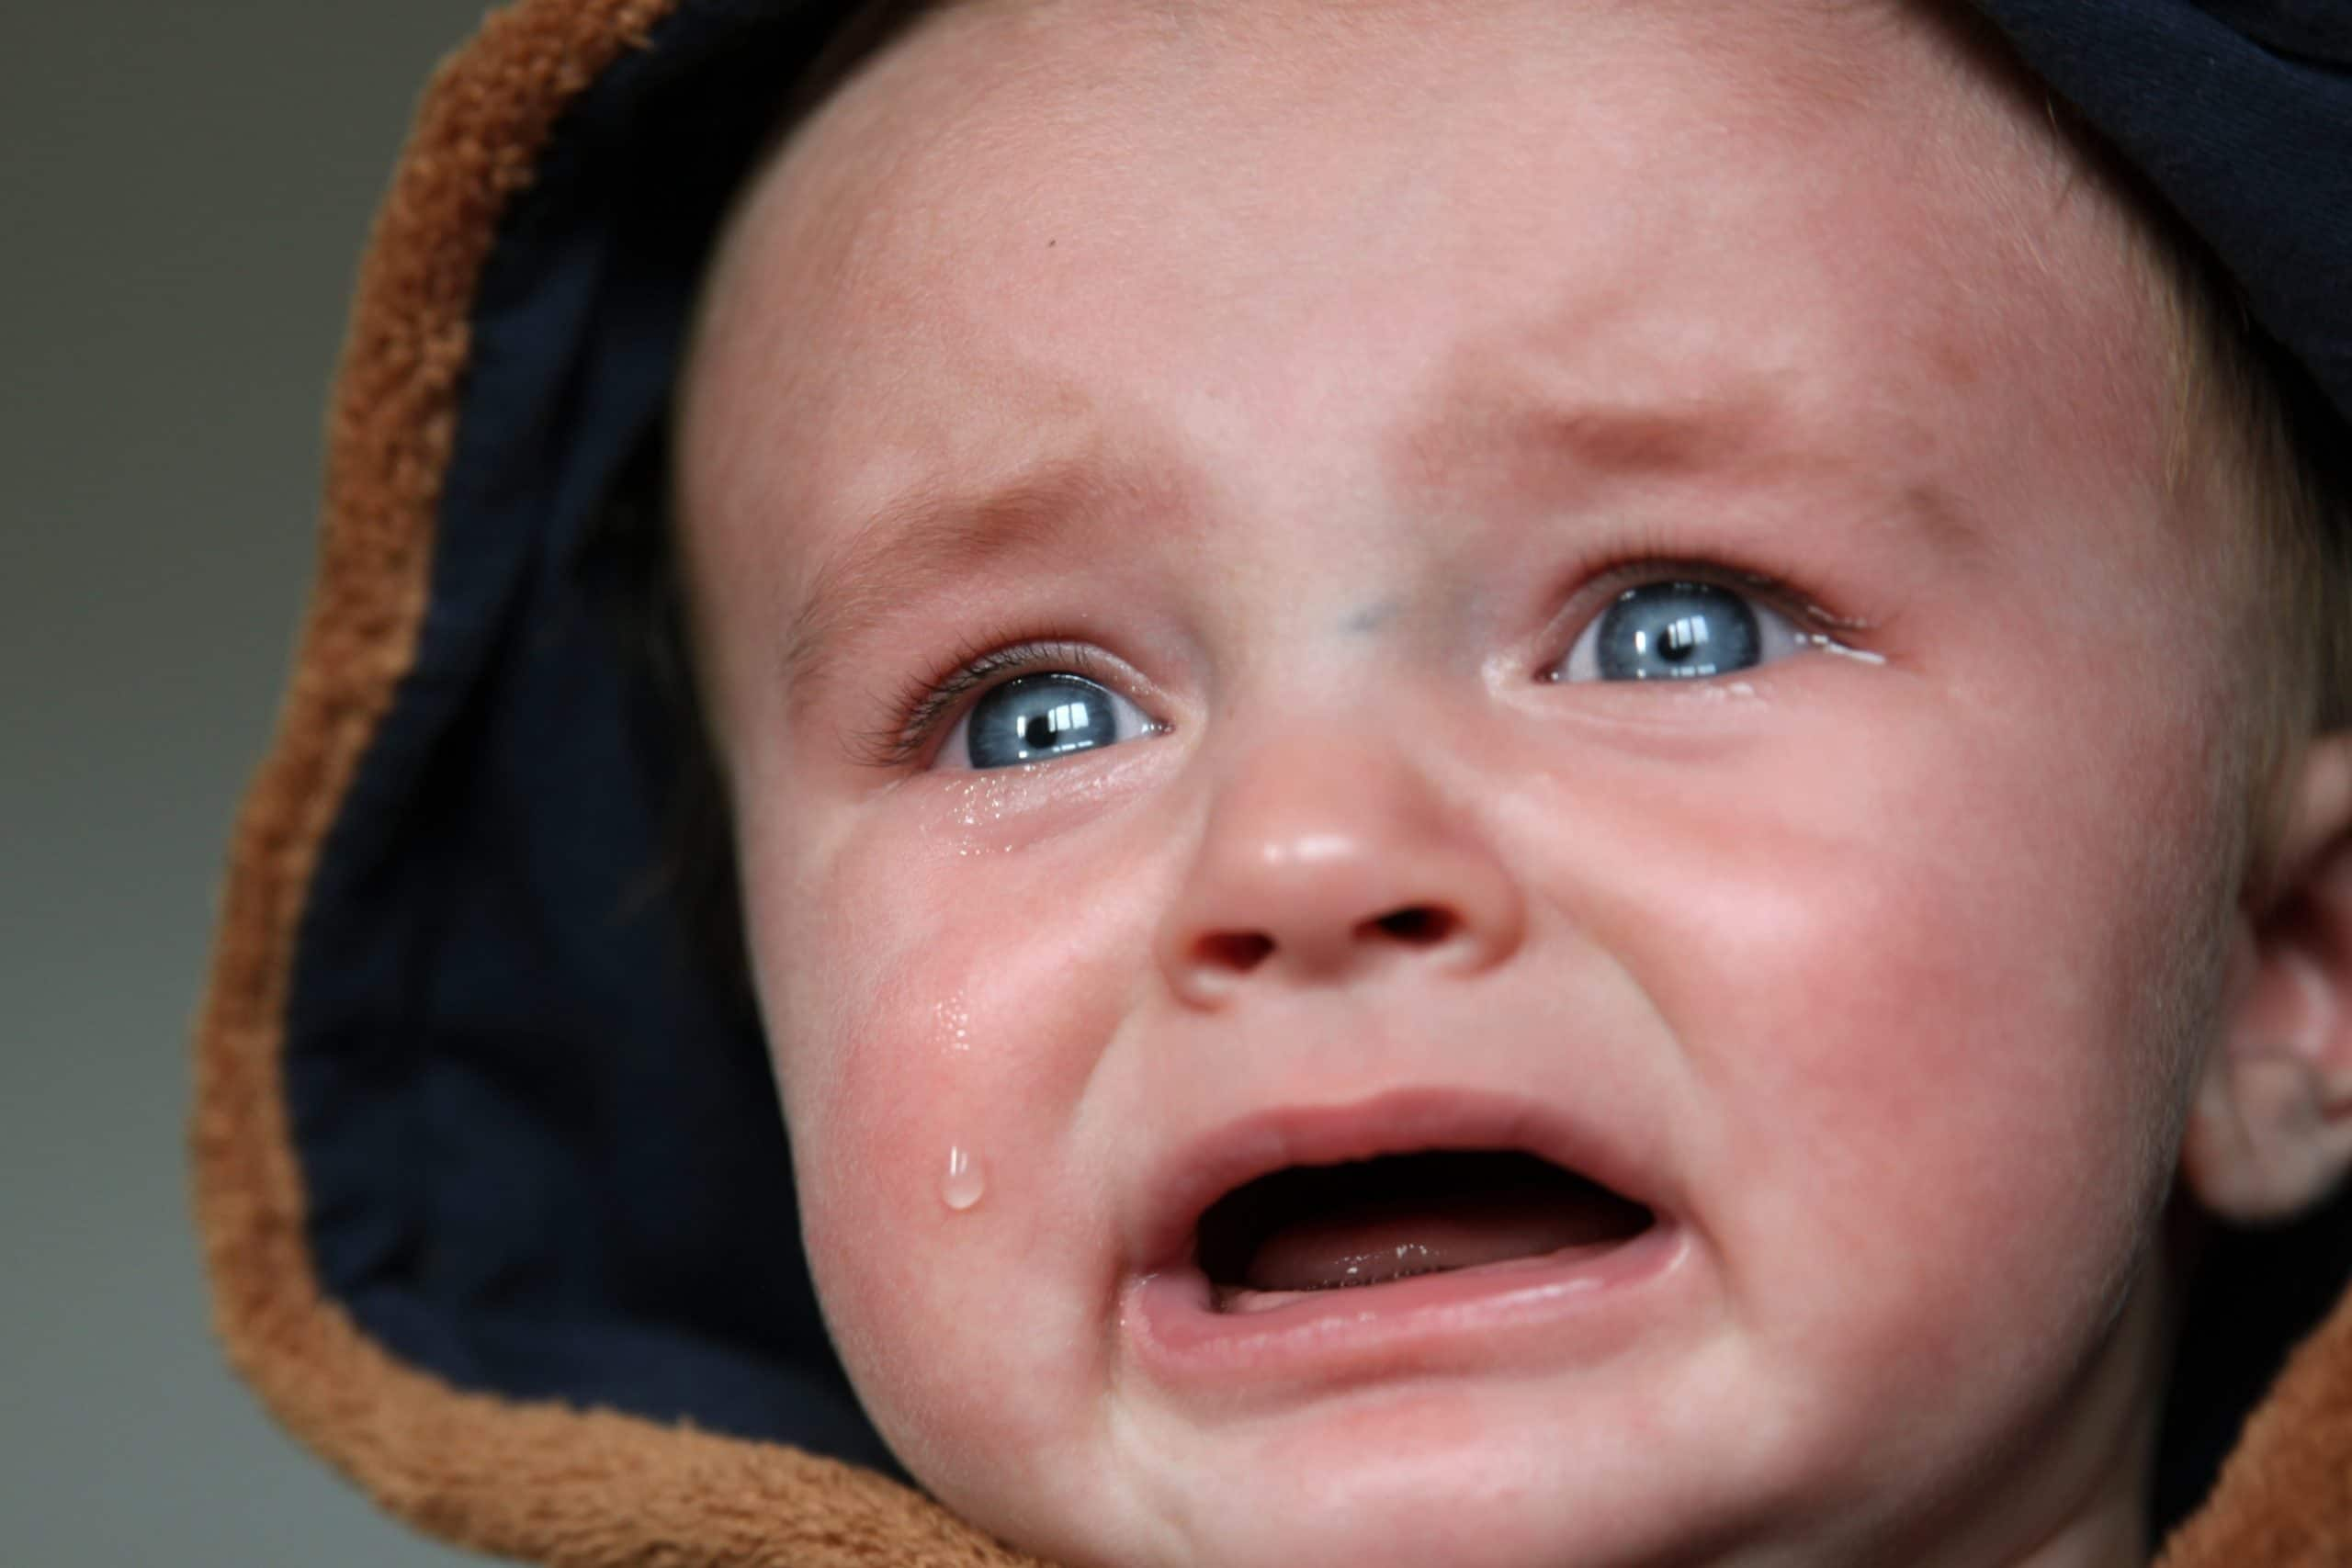 Toddler Crying Uncontrollably For No Reason